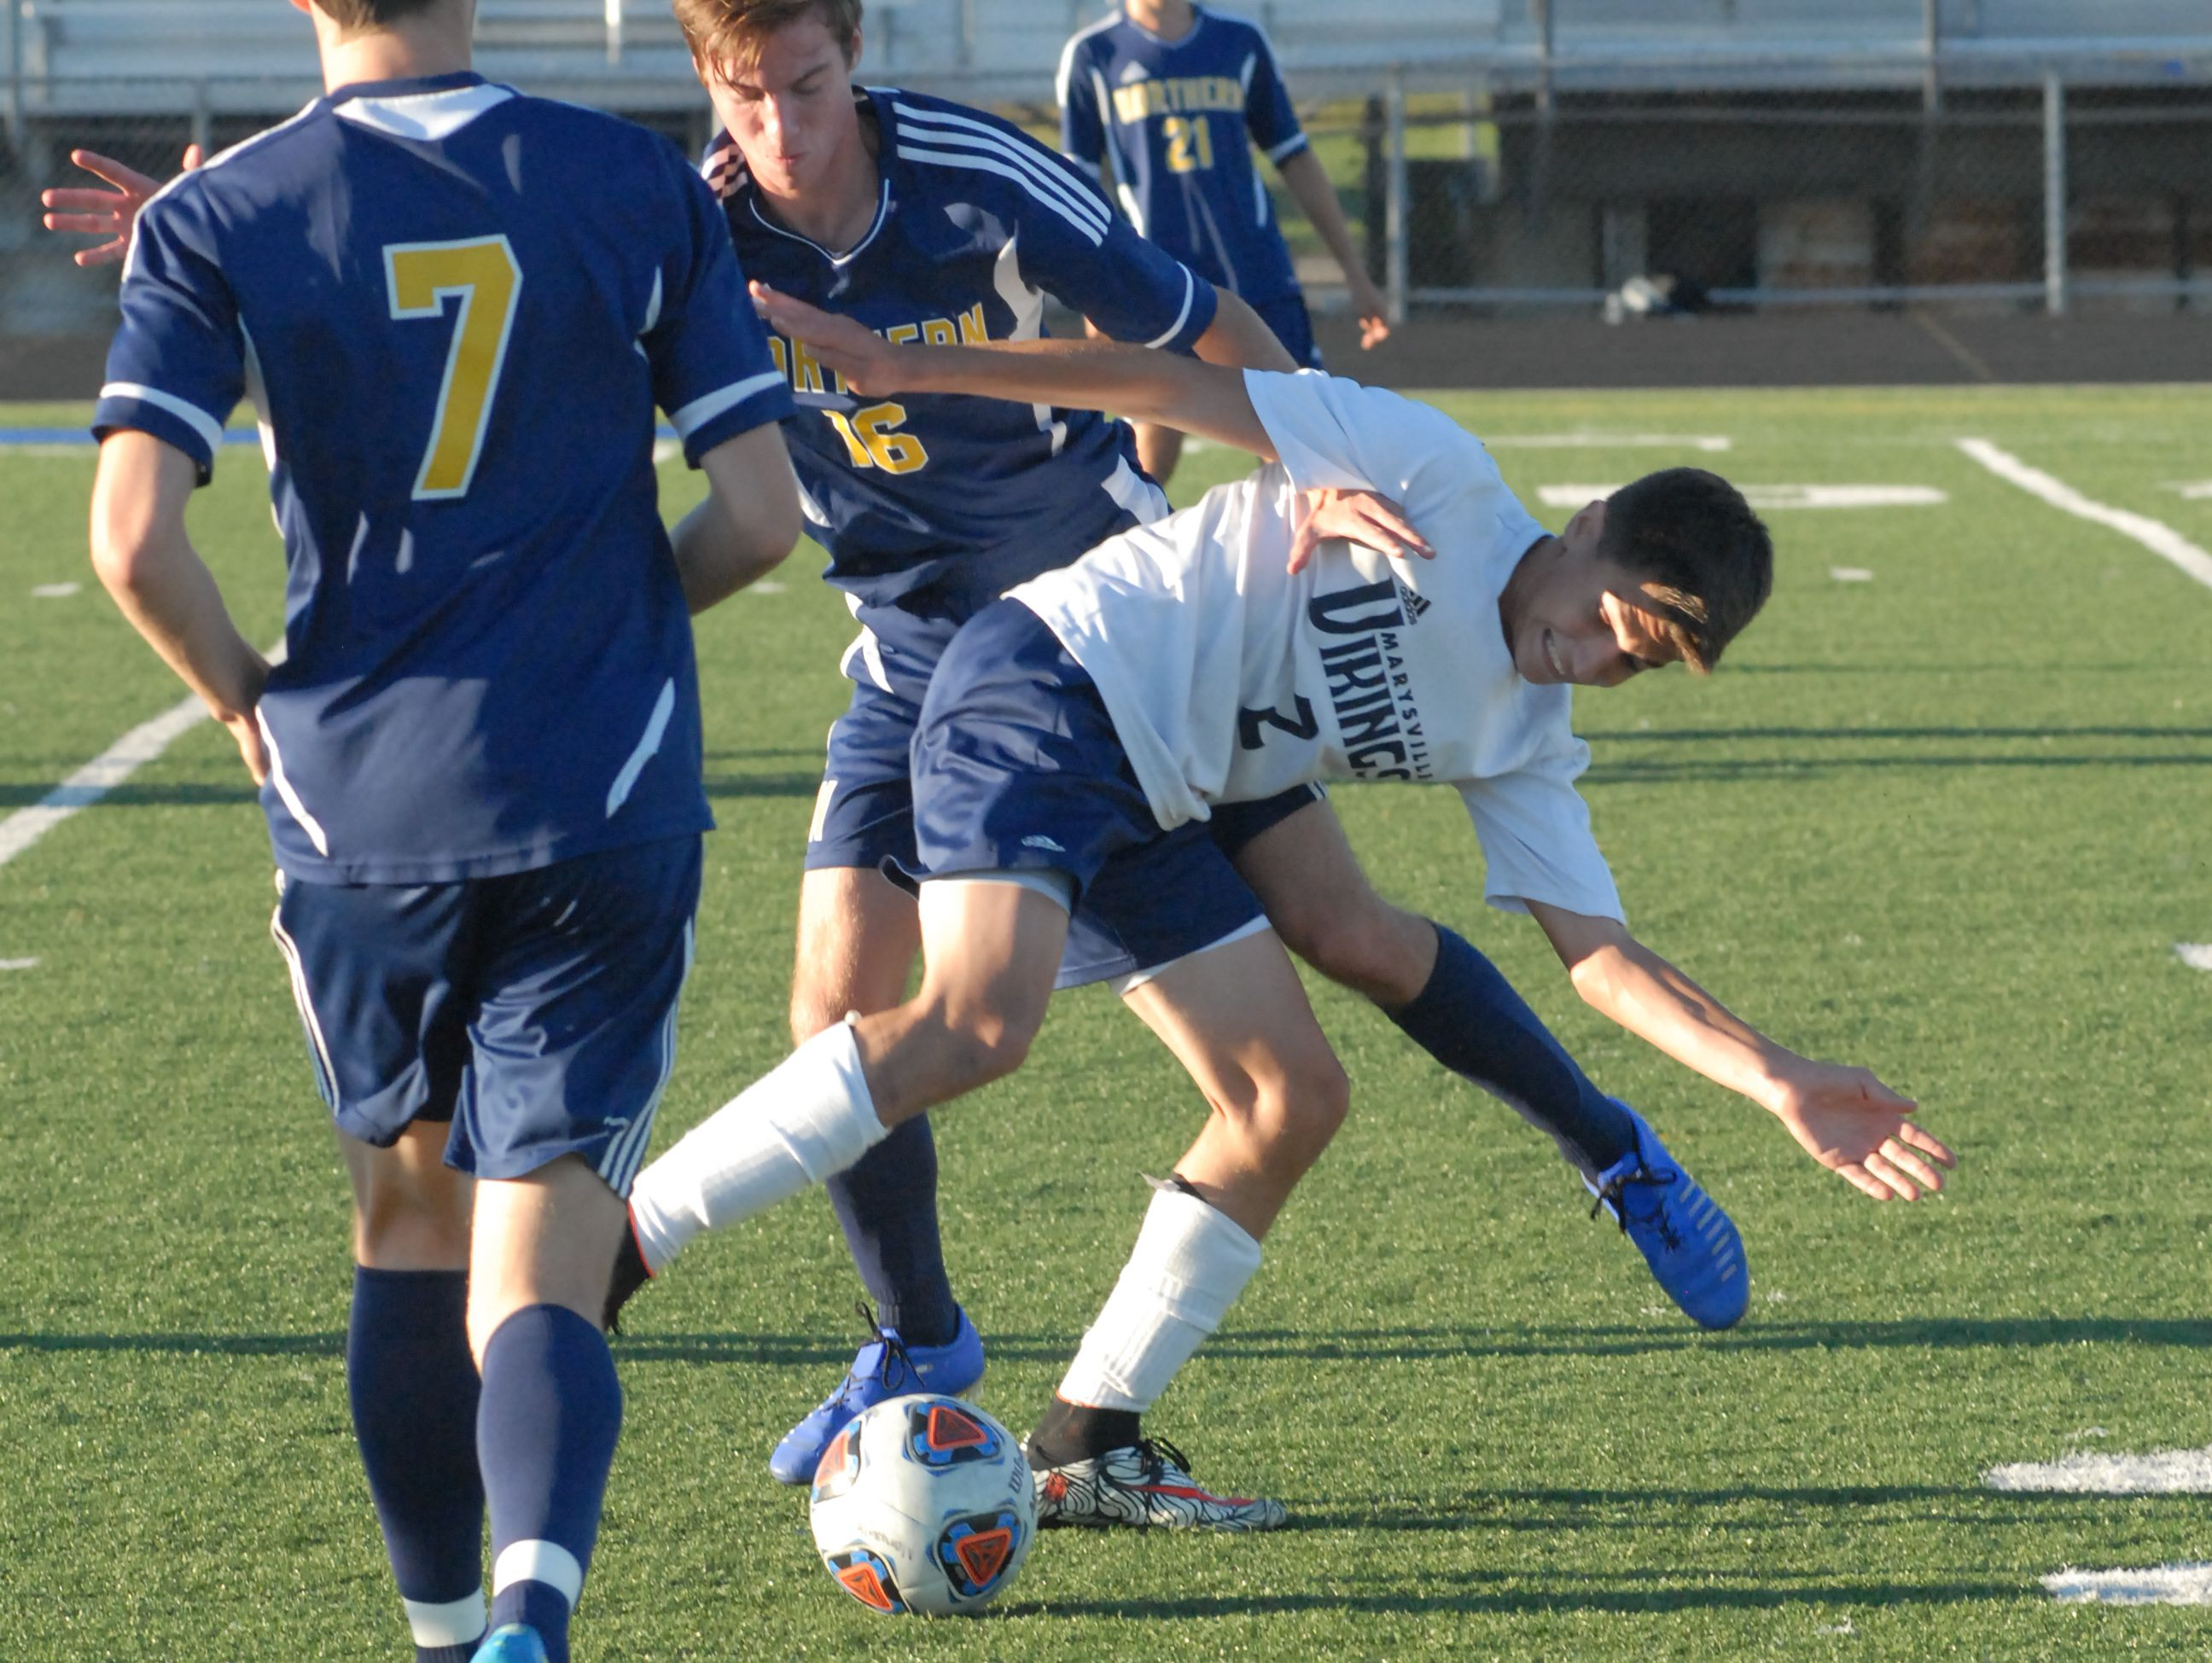 Port Huron Northern's Kurtis Obermyer and Marysville's Marshal DiGiovanni fight for the ball in the first half of the Vikings 2-1 win on Sept. 14, 2016.